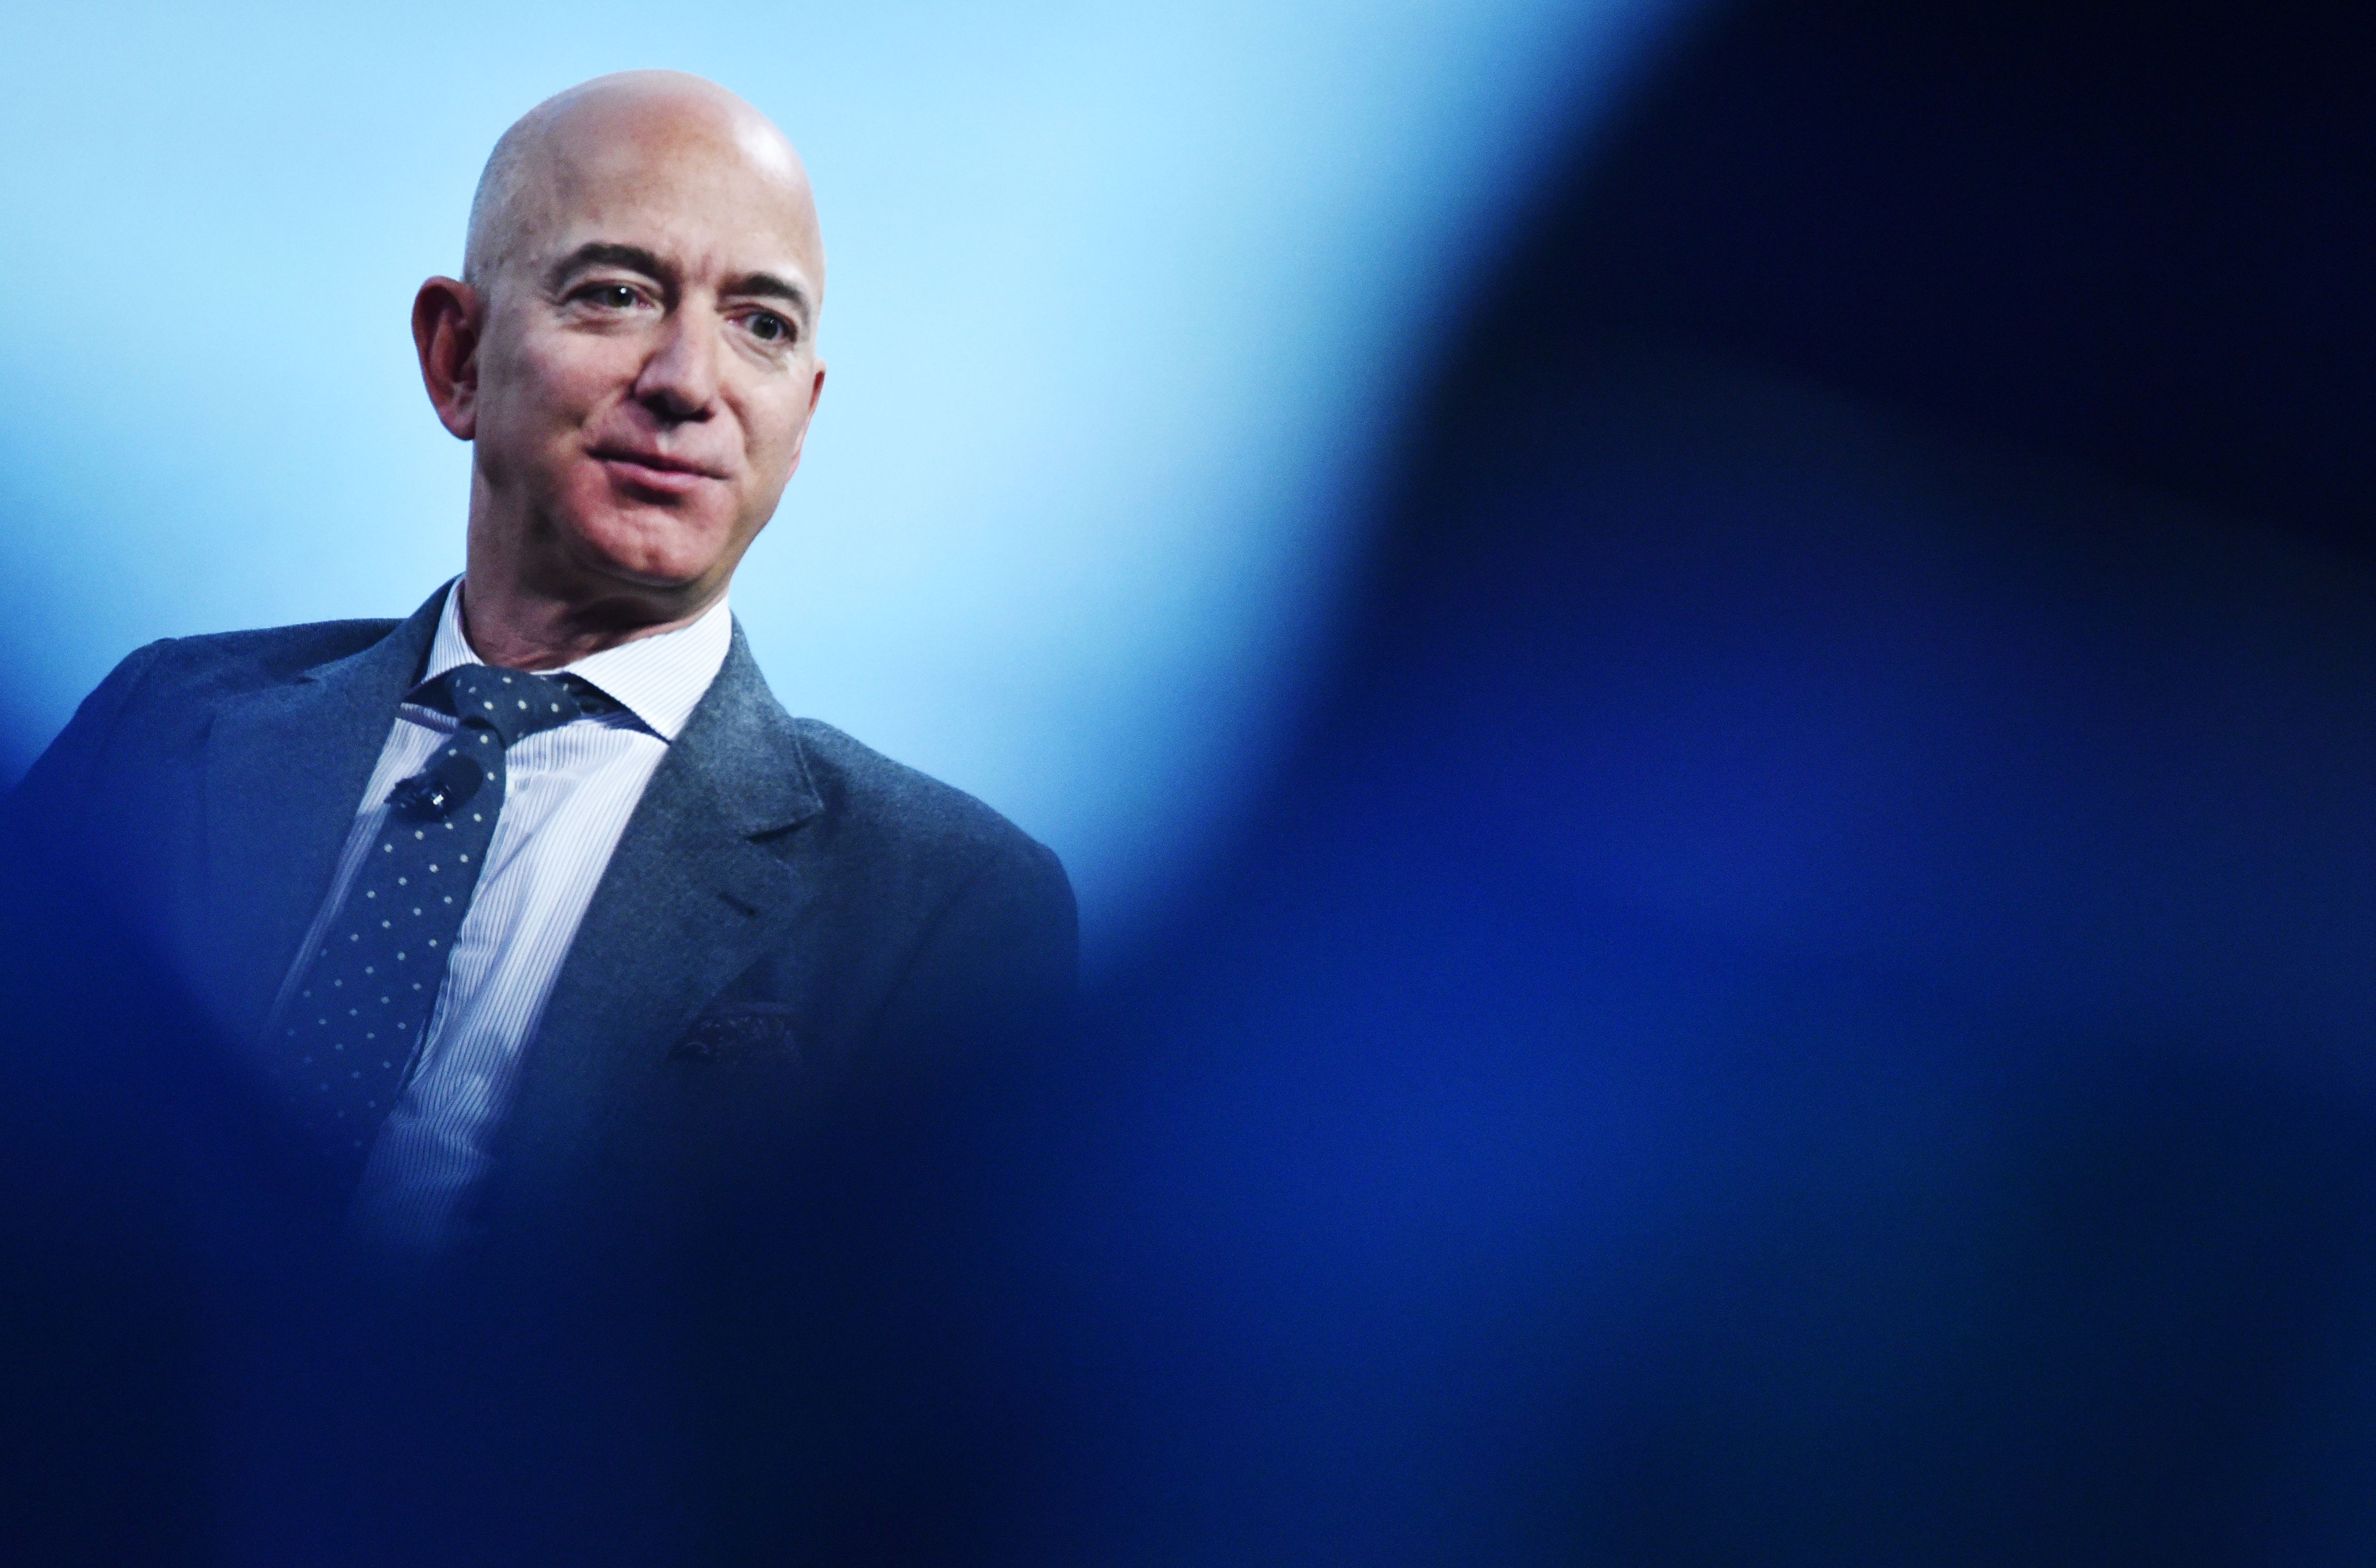 Jeff Bezos just made one of the largest charitable gifts ever